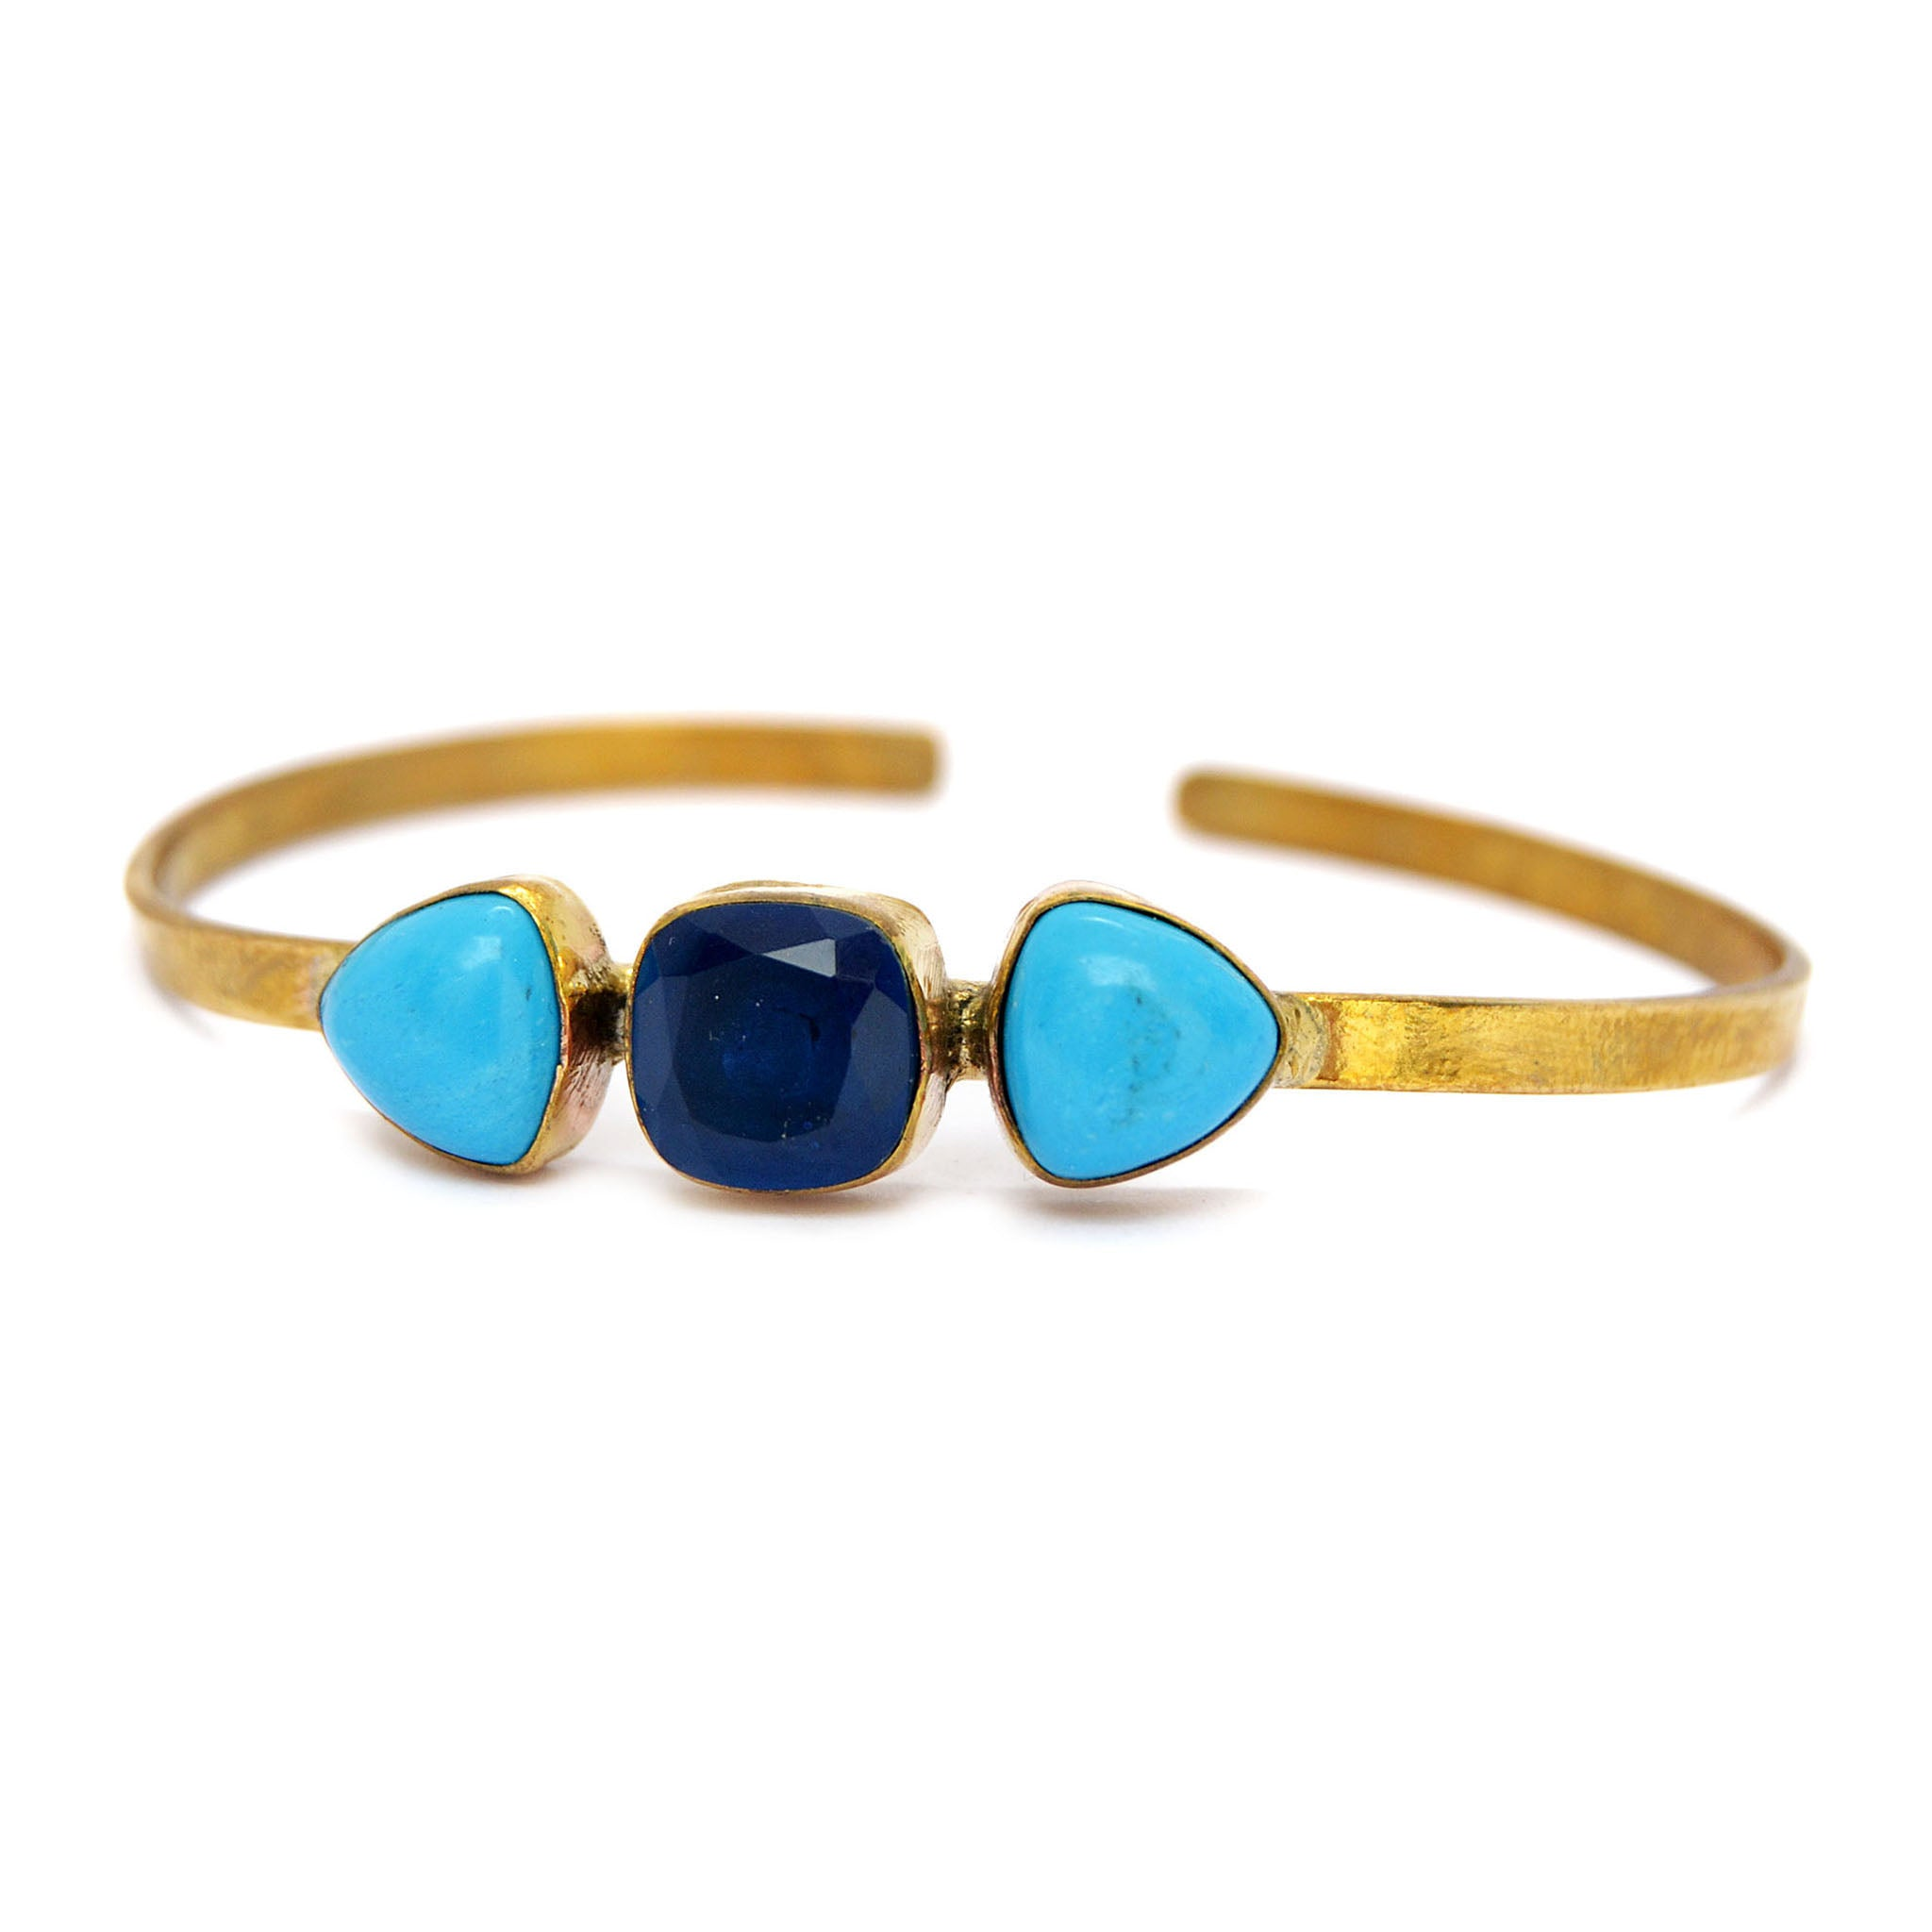 Gold and blue bangle